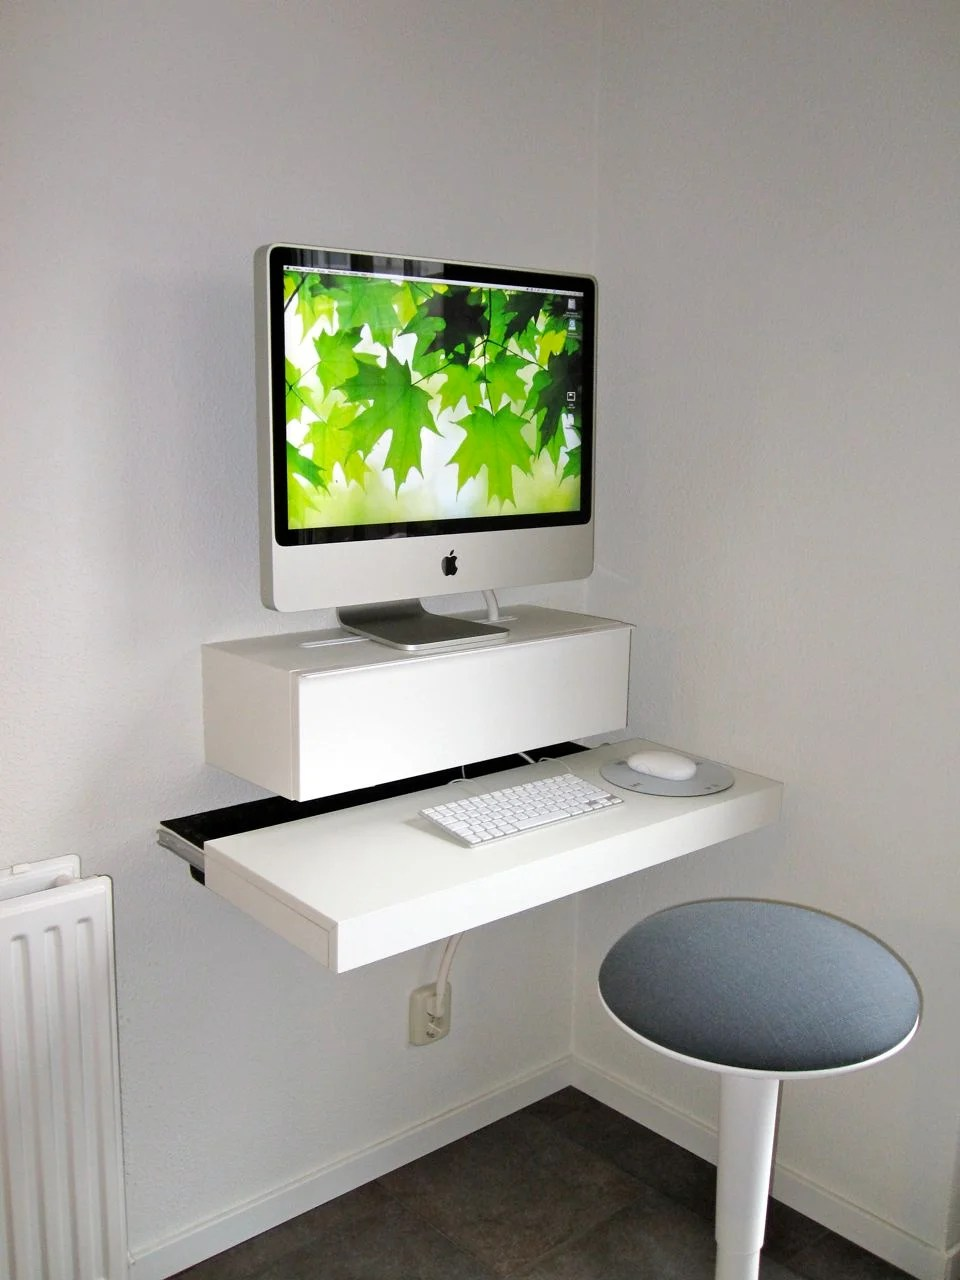 Floating Desk Australia The Best Hacks From The Fan Site Ikea Doesn T Want You To See